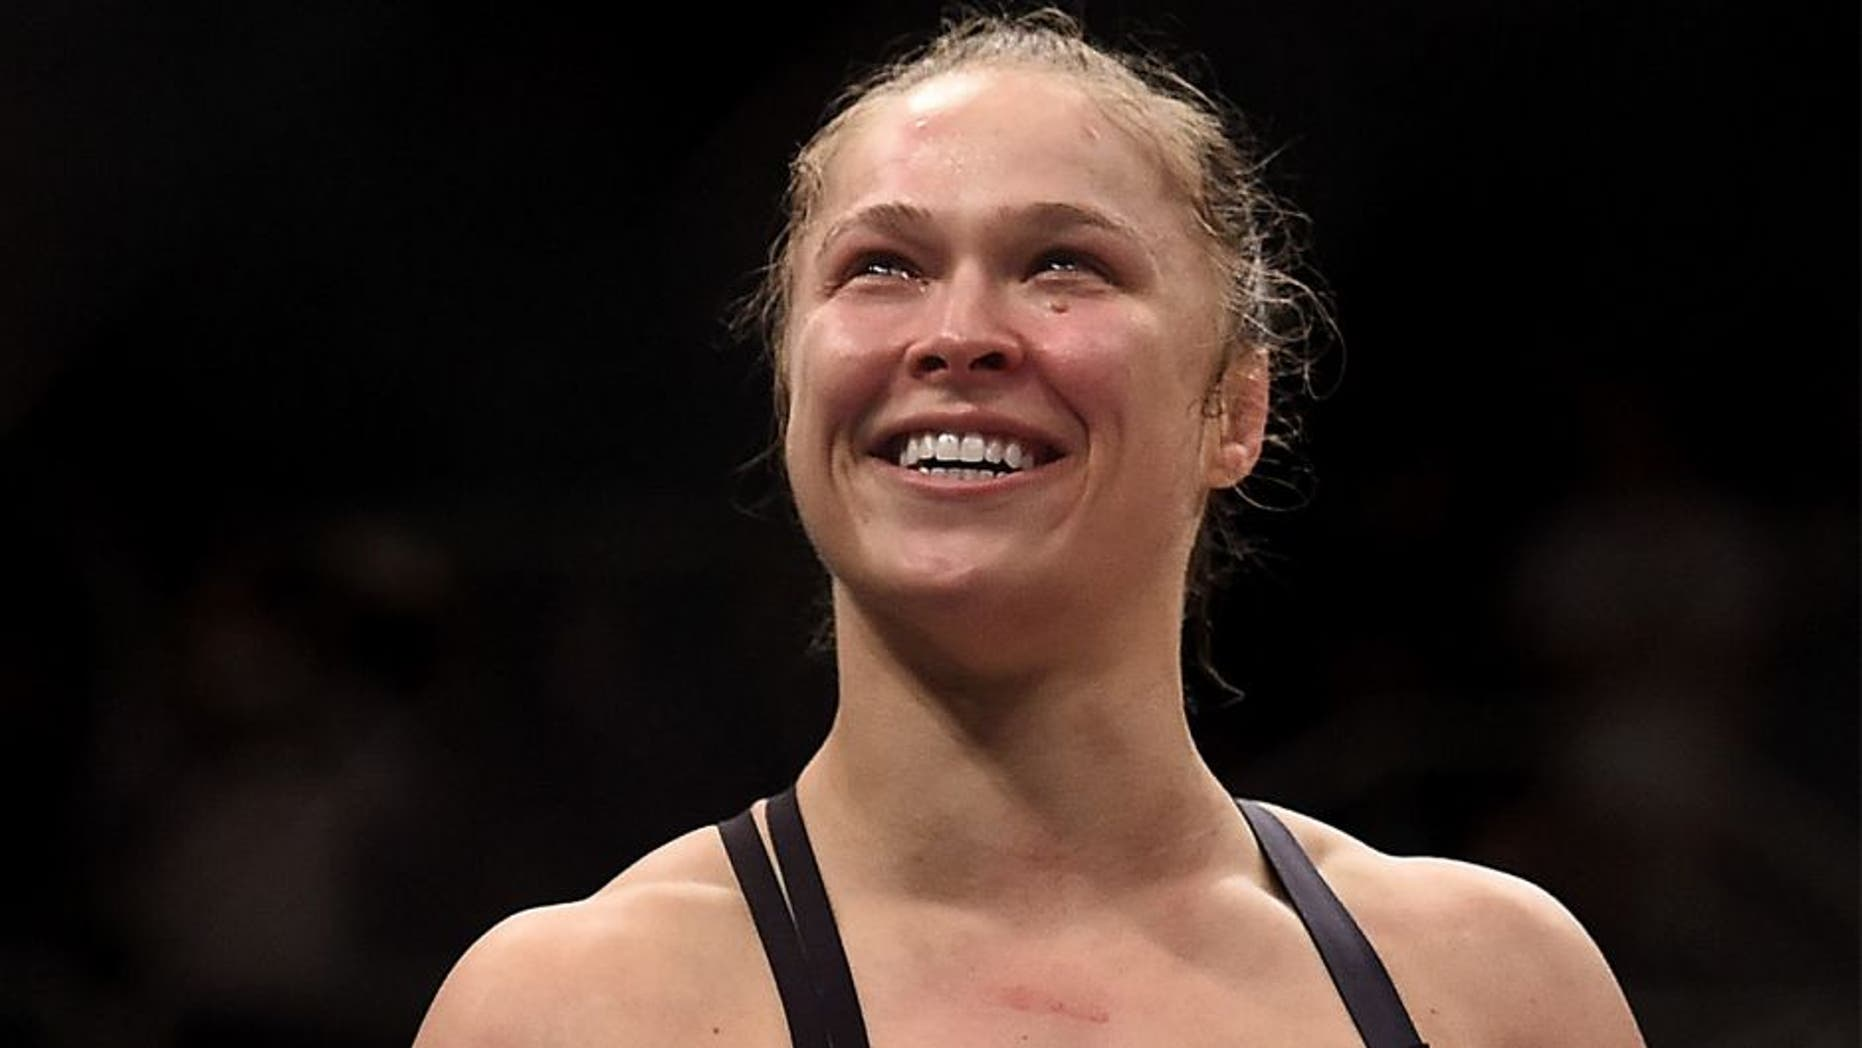 RIO DE JANEIRO, BRAZIL - AUGUST 01: Ronda Rousey of the United States celebrates victory over Bethe Correia of Brazil in their bantamweight title fight during the UFC 190 Rousey v Correia at HSBC Arena on August 1, 2015 in Rio de Janeiro, Brazil. (Photo by Buda Mendes/Zuffa LLC/Zuffa LLC via Getty Images)